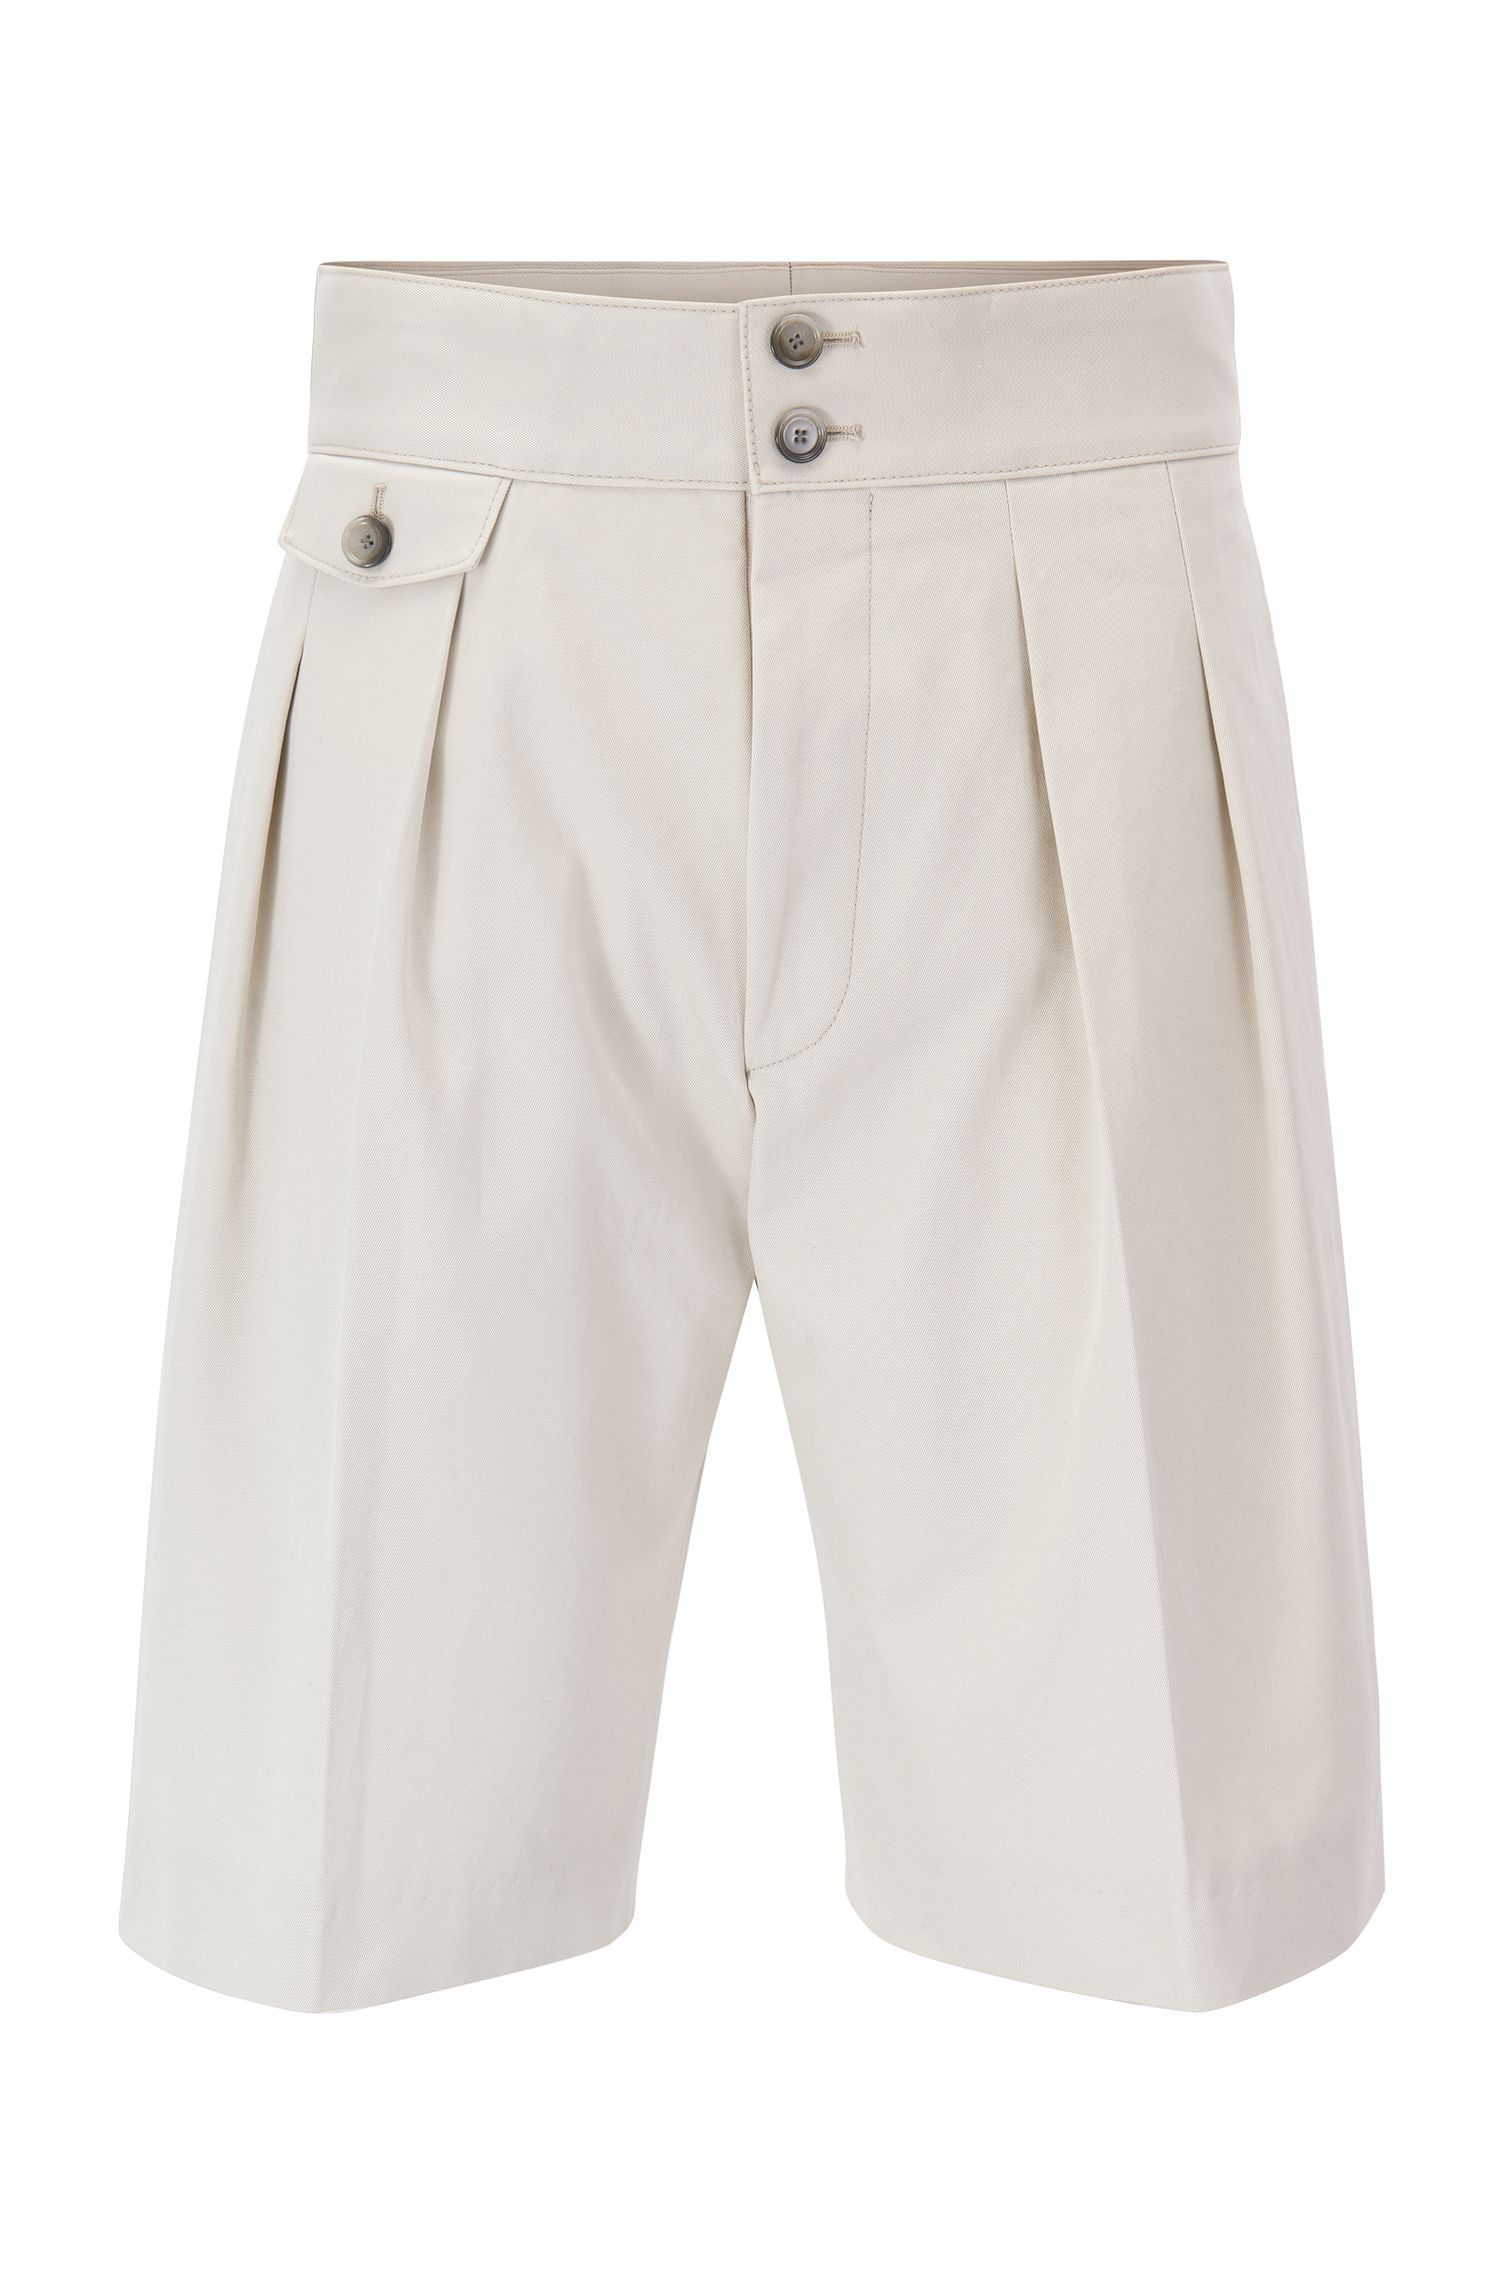 Runway Edition high-waisted pleated shorts in pure cotton